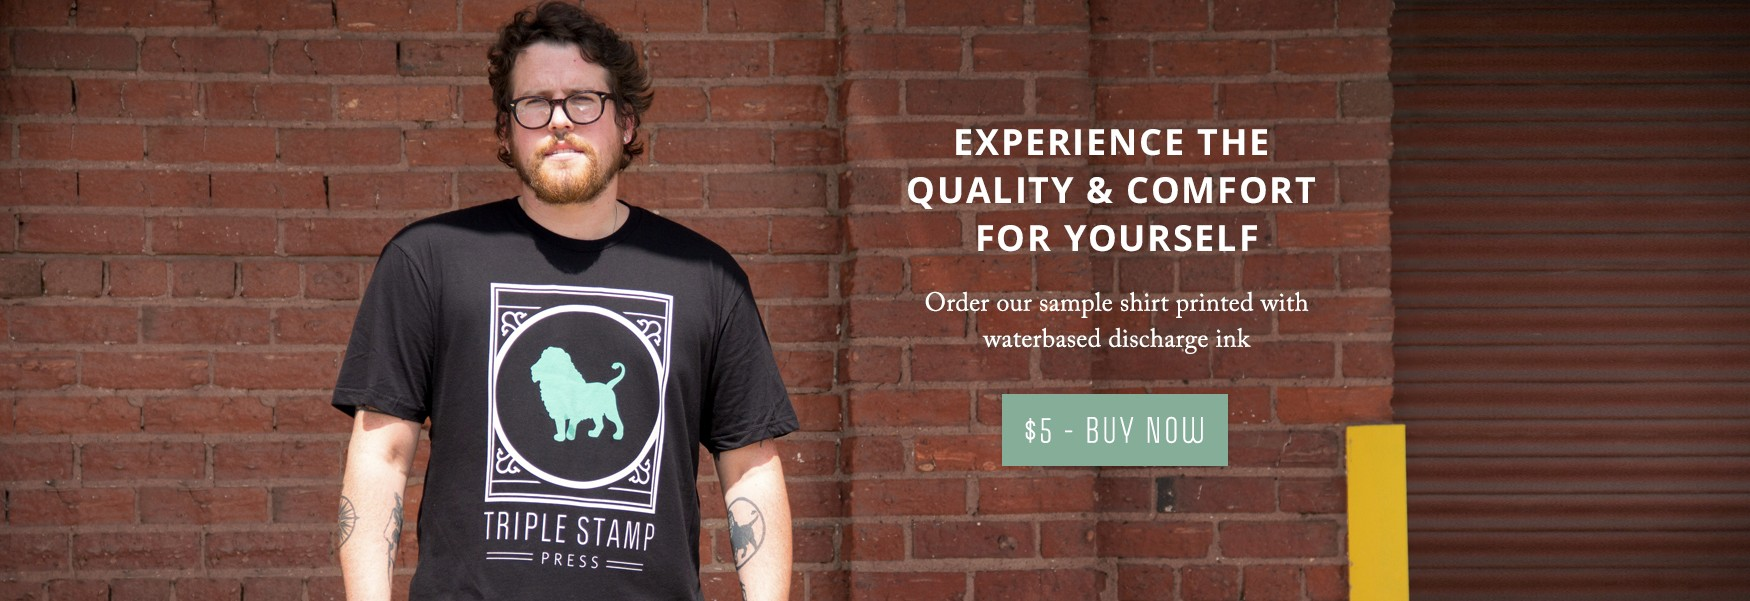 Experience the quality & comfort for yourself. Order our sample shirt printed with water based discharge ink.